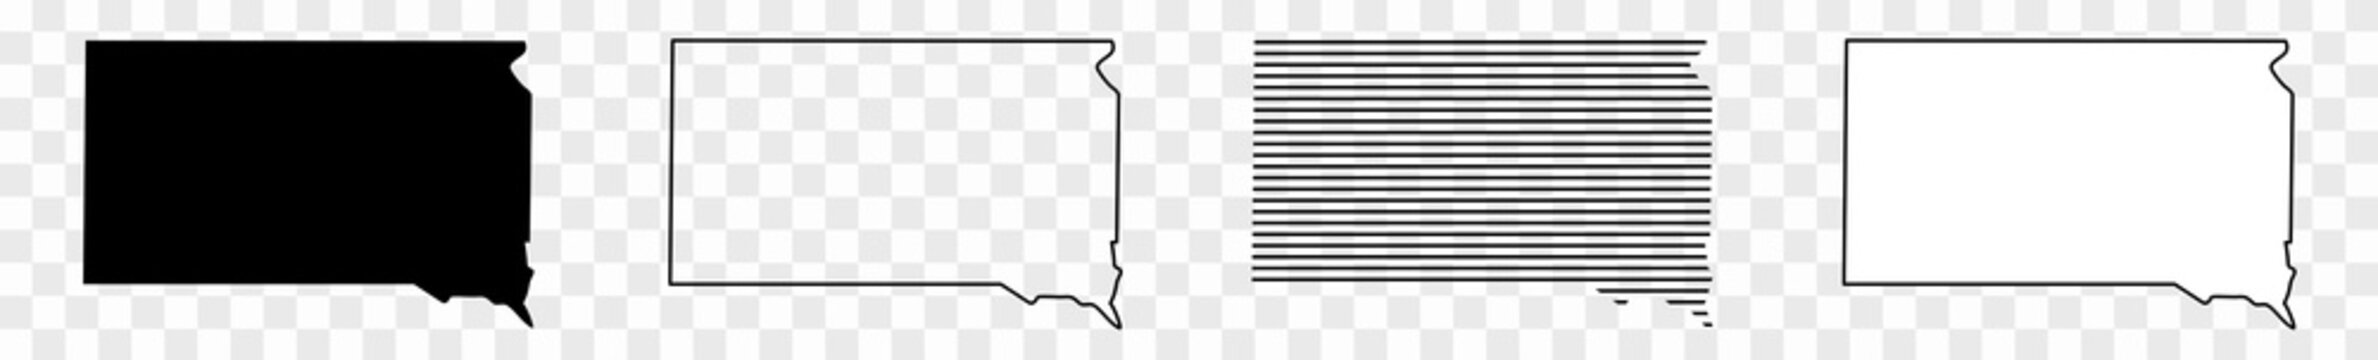 South Dakota Map Black | State Border | United States | US America | Transparent Isolated | Variations